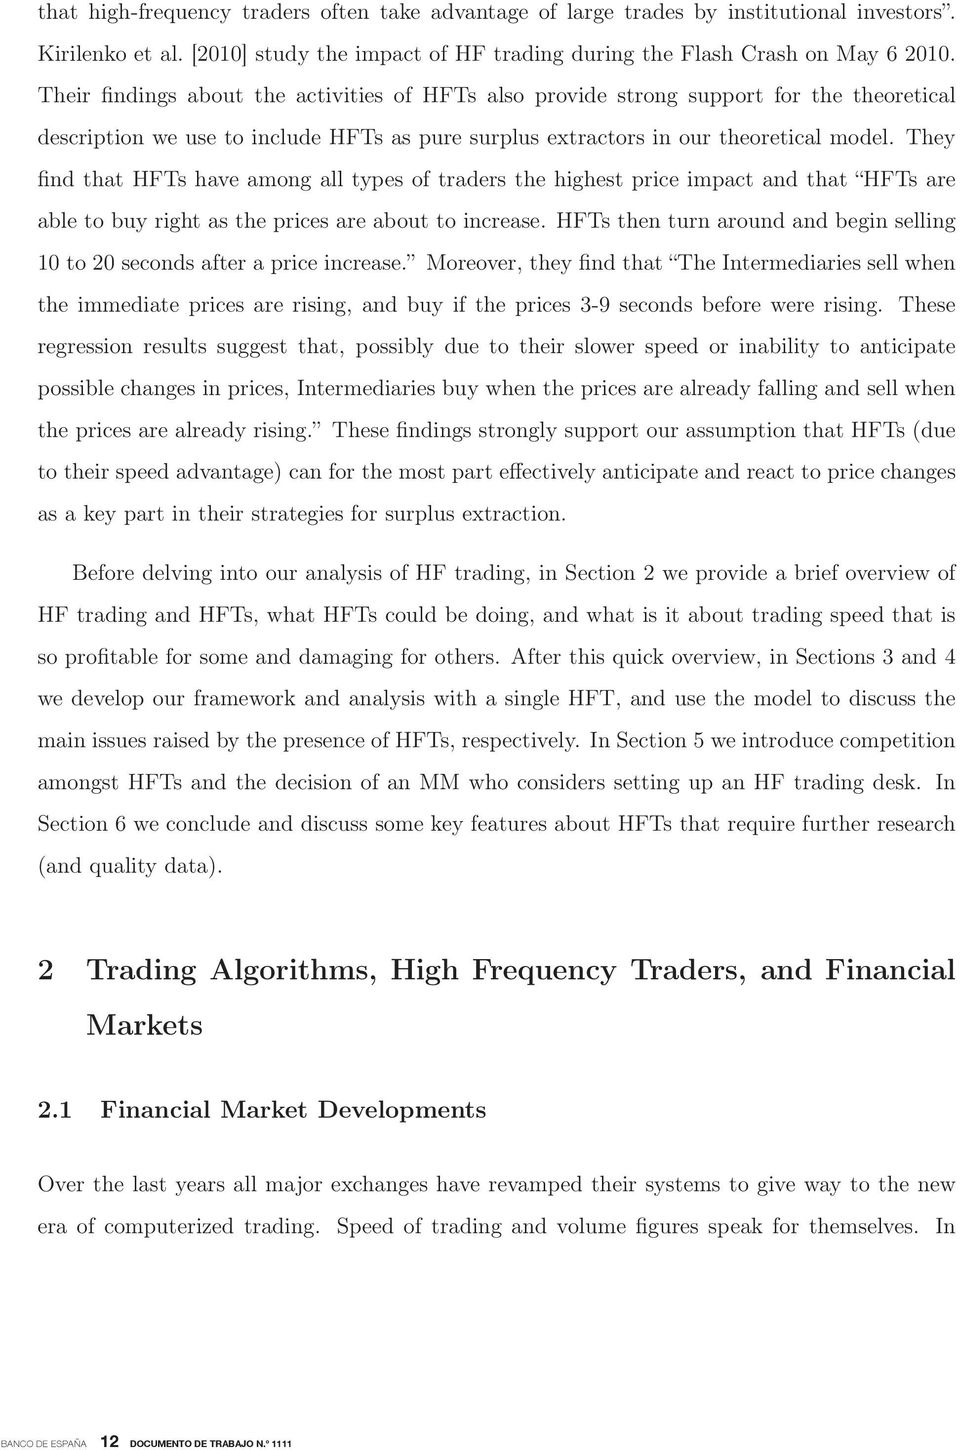 They find that HFTs have among all types of traders the highest price impact and that HFTs are able to buy right as the prices are about to increase.